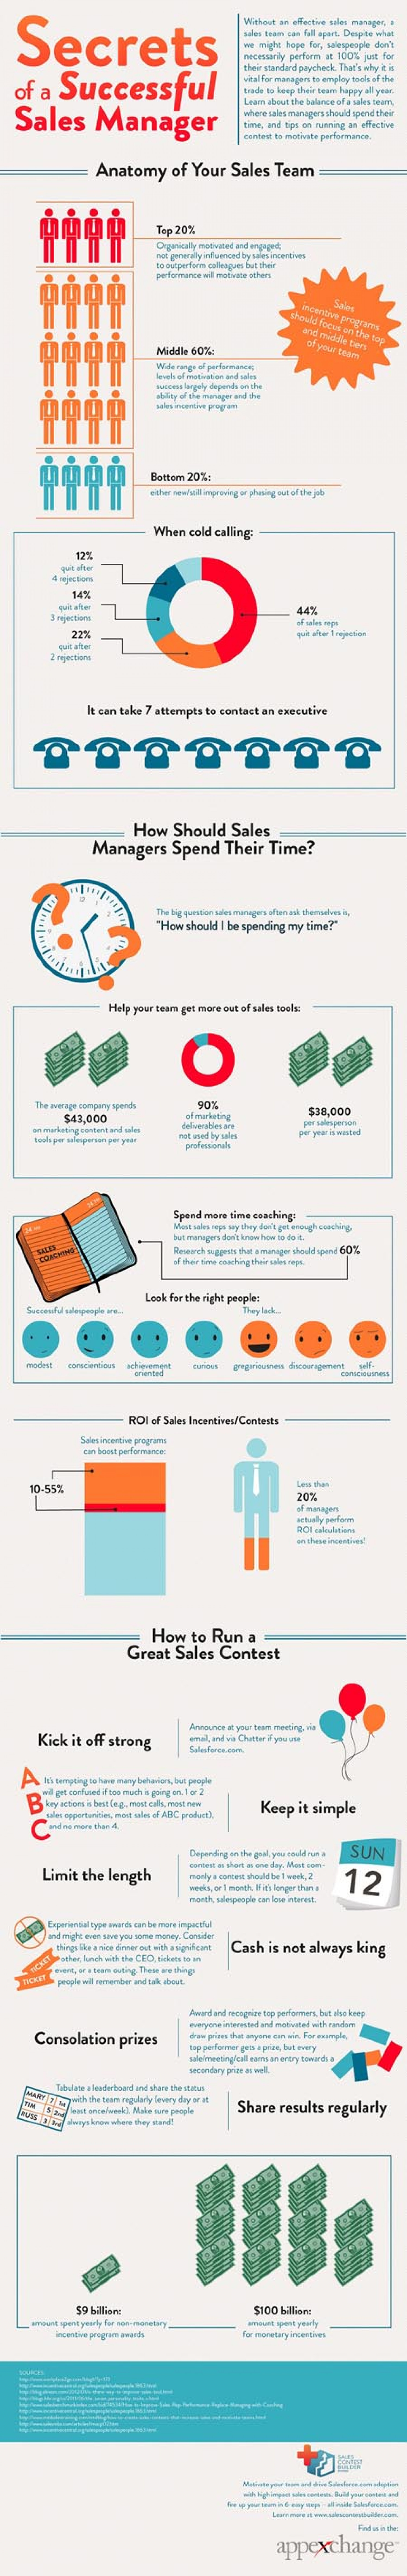 Secrets of a Successful Sales Manager Infographic